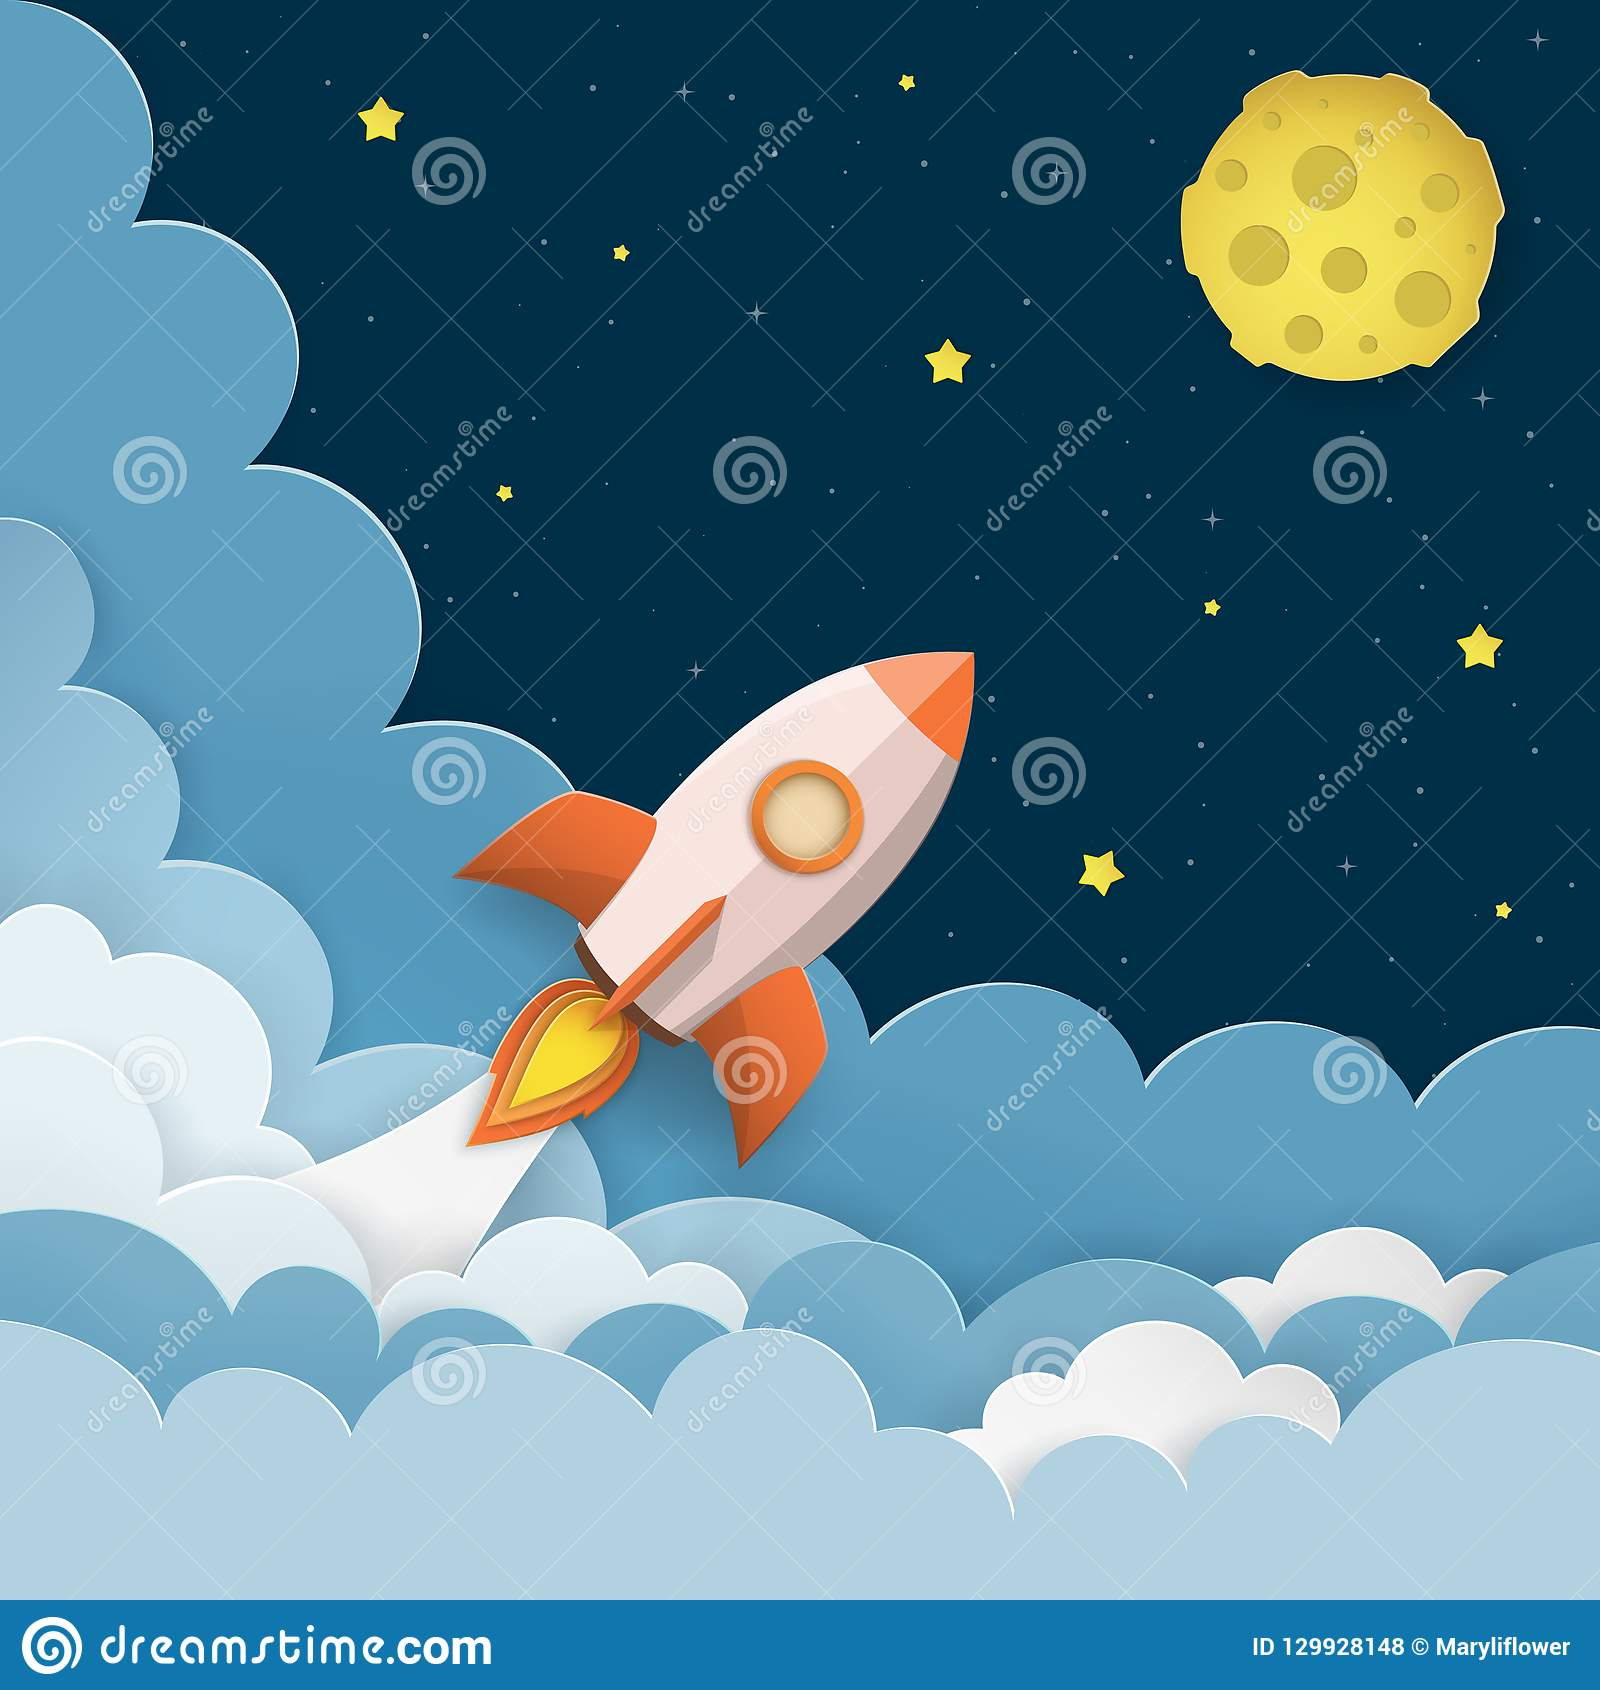 Rockets To The Moon: Spaceship Fly To The Moon Cartoon Vector